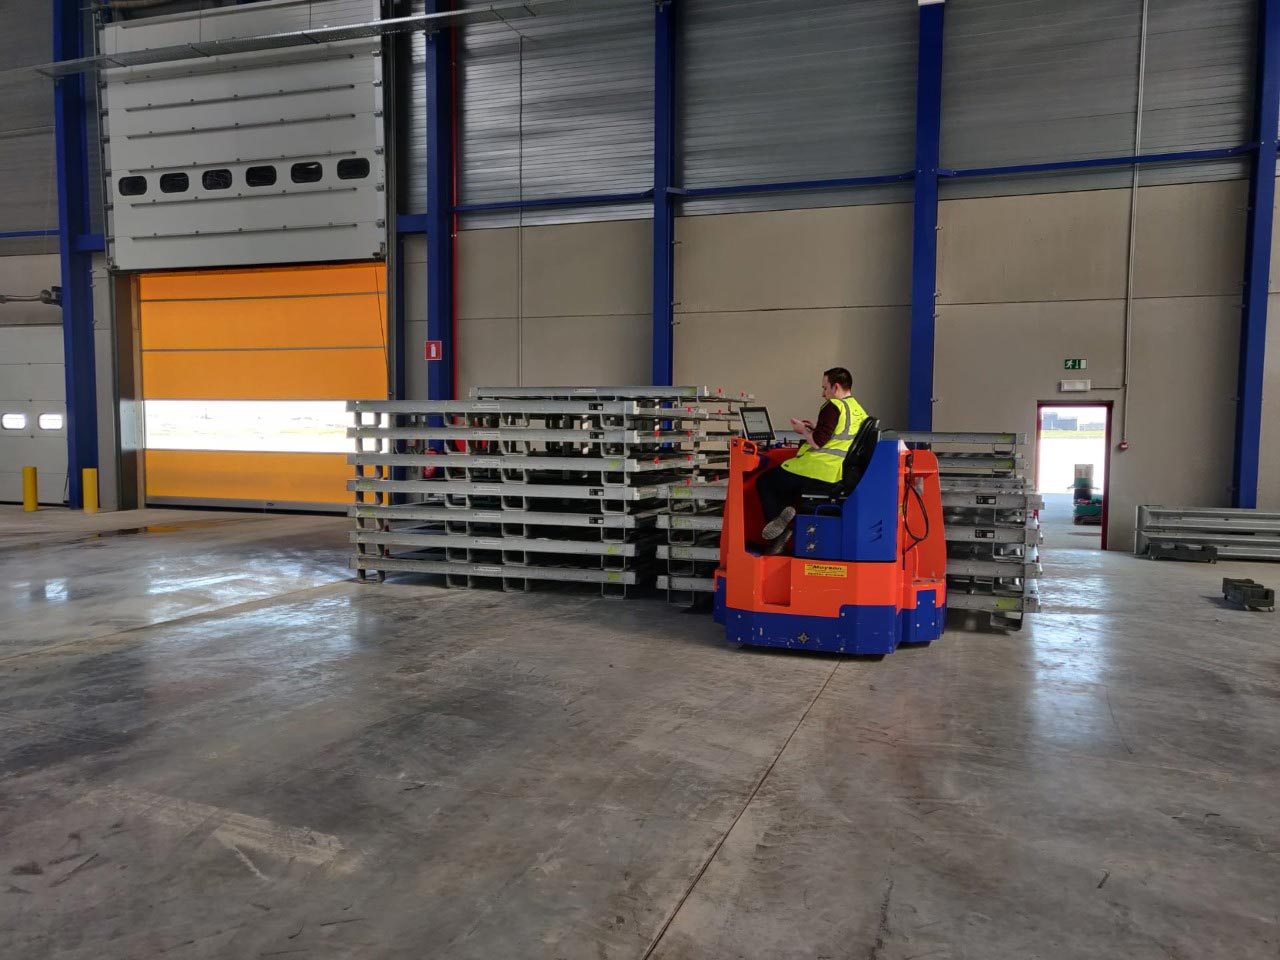 Cargo infrastructure at Liege Airport